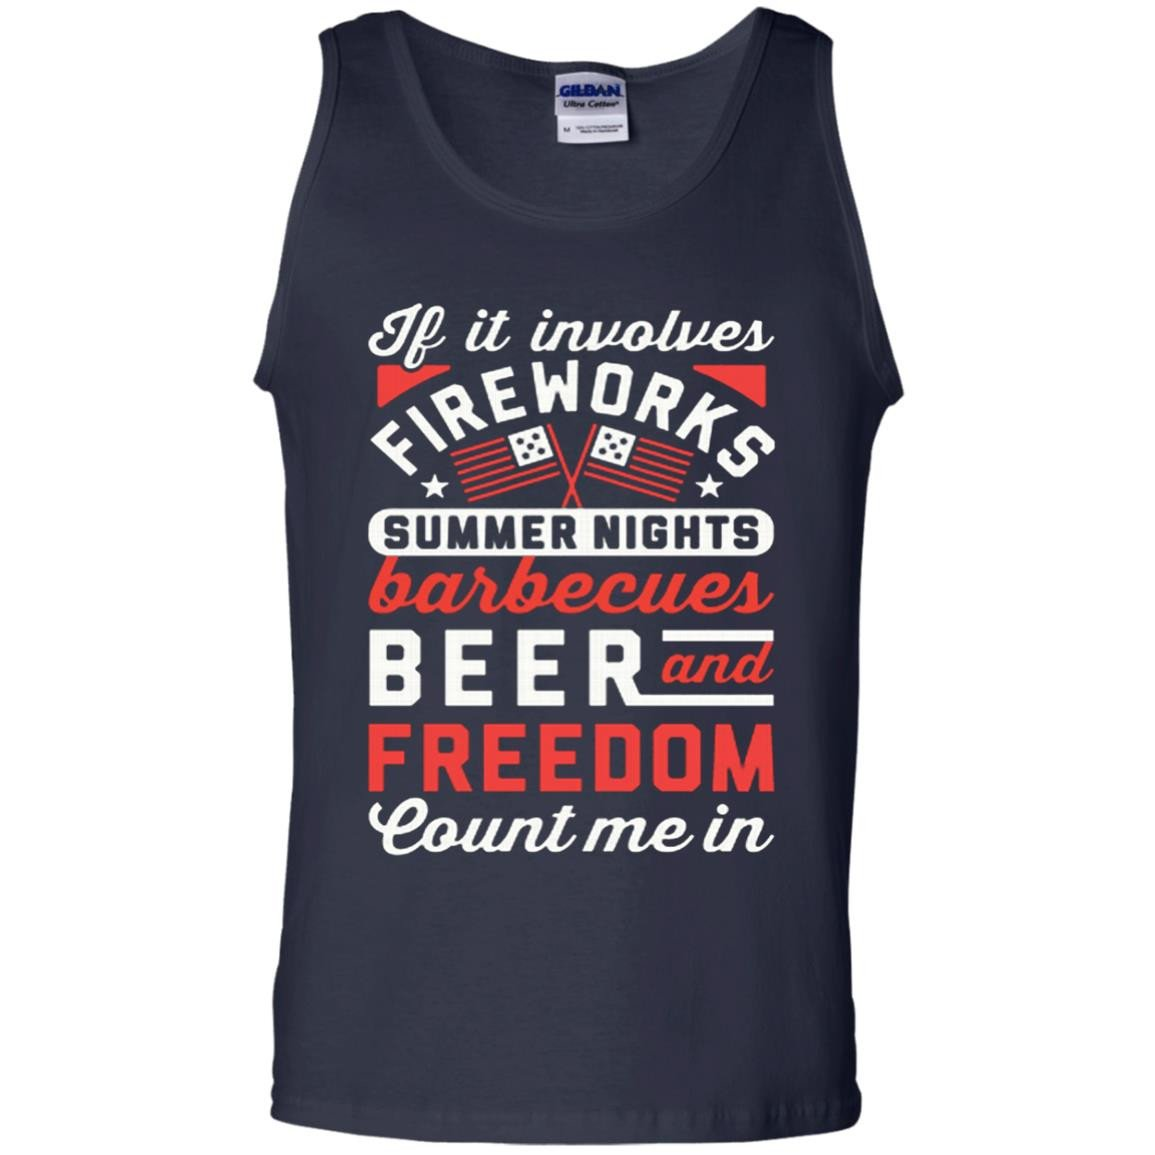 America Beer Barbecue Shirts IF IT INVOLVES FIREWORKS COUNT ME IN T-shirts Hoodies Sweatshirts